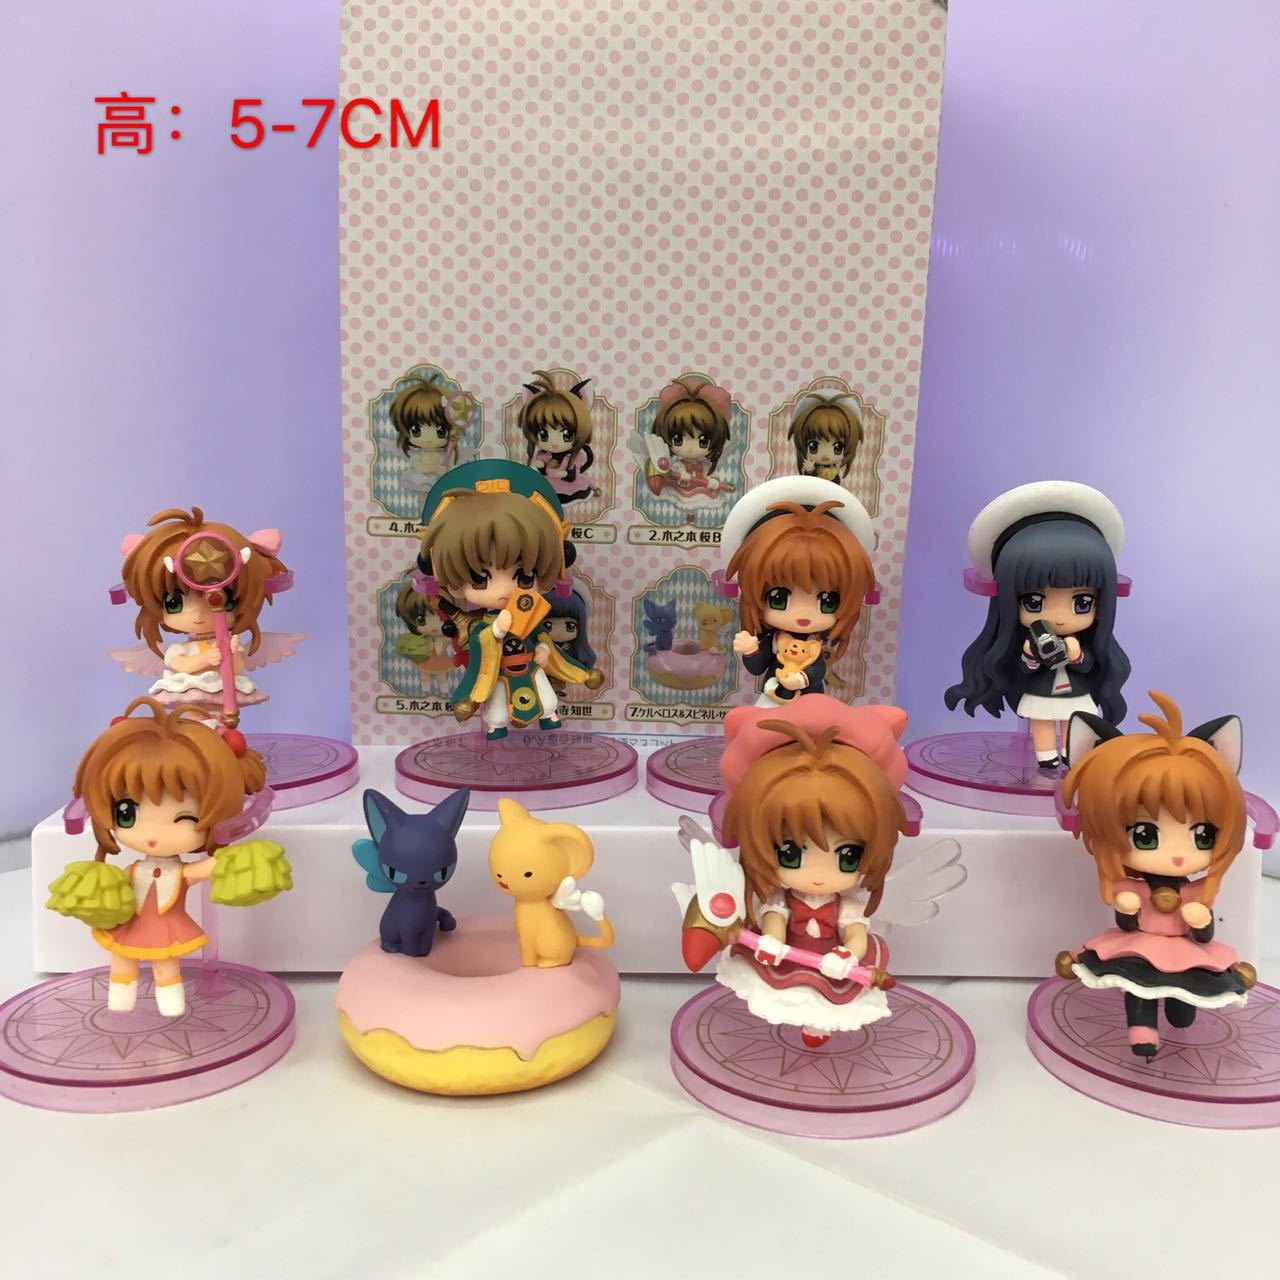 Amazon.com: 8pc/set Anime Card Captor Sakura PVC cifras ...